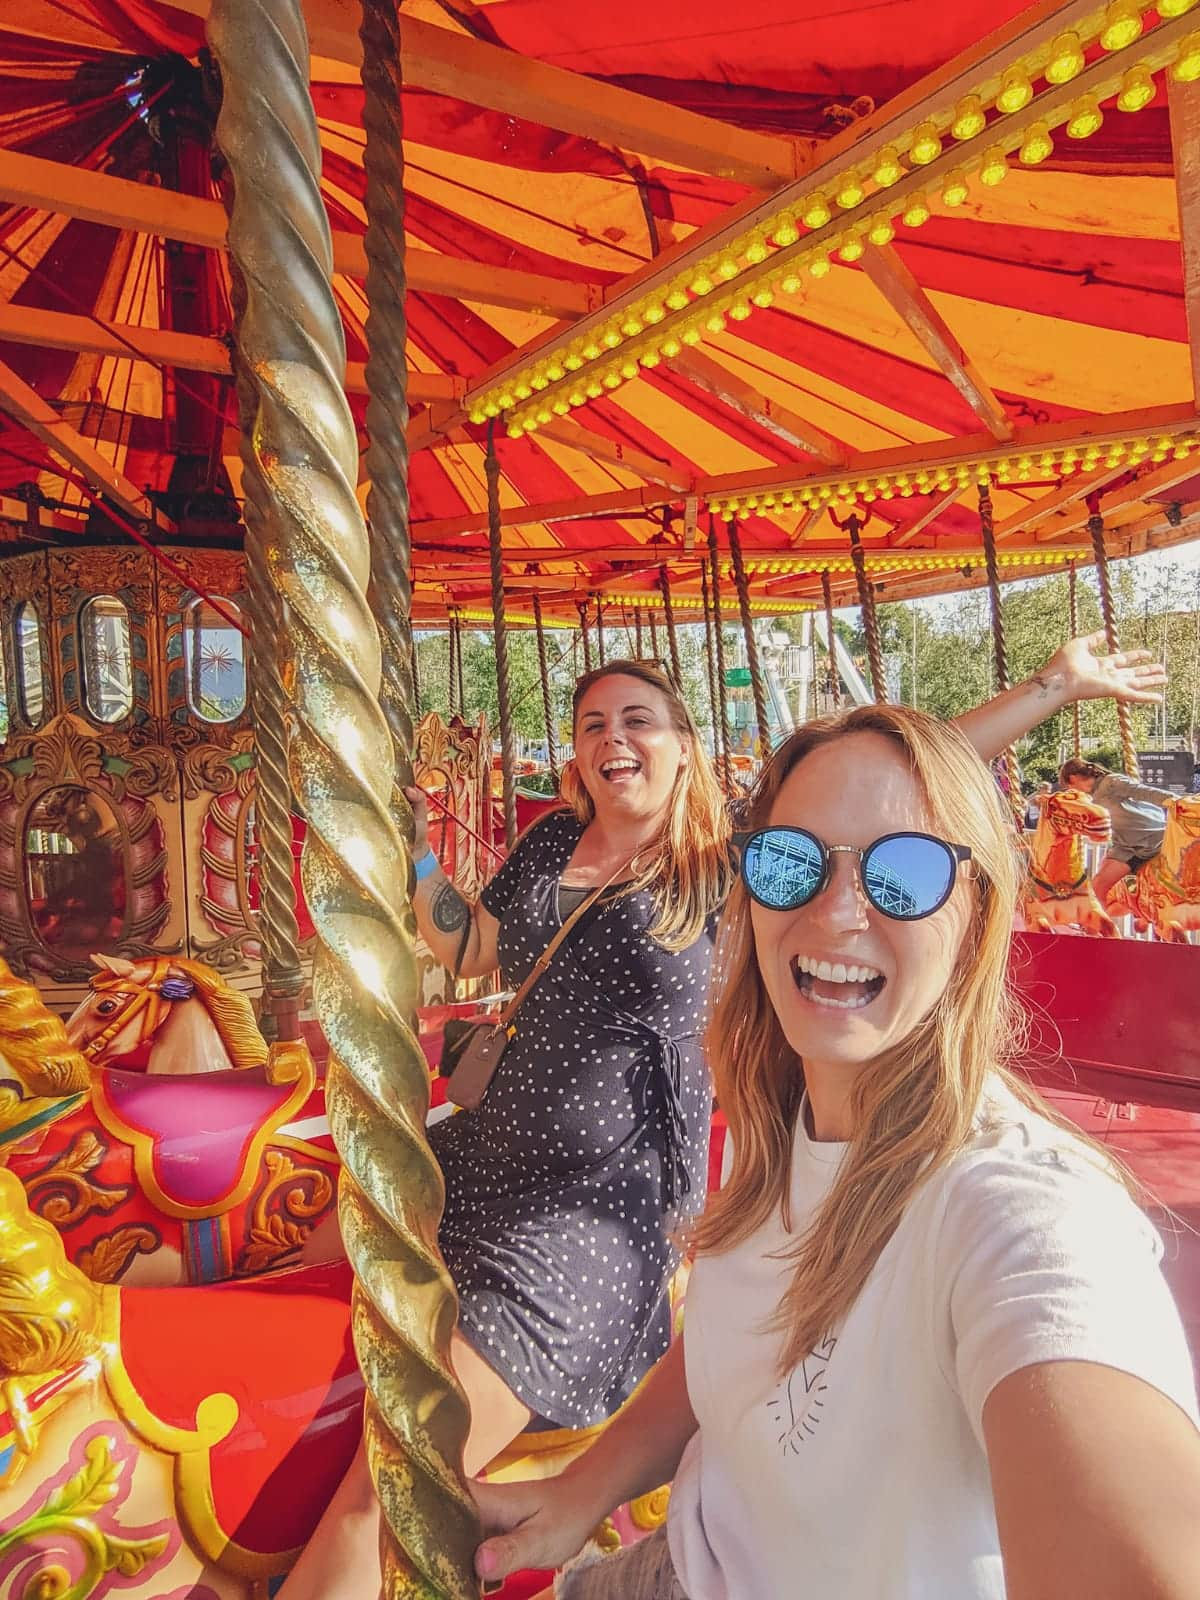 Riding Gallopers carousel at Dreamland Margate